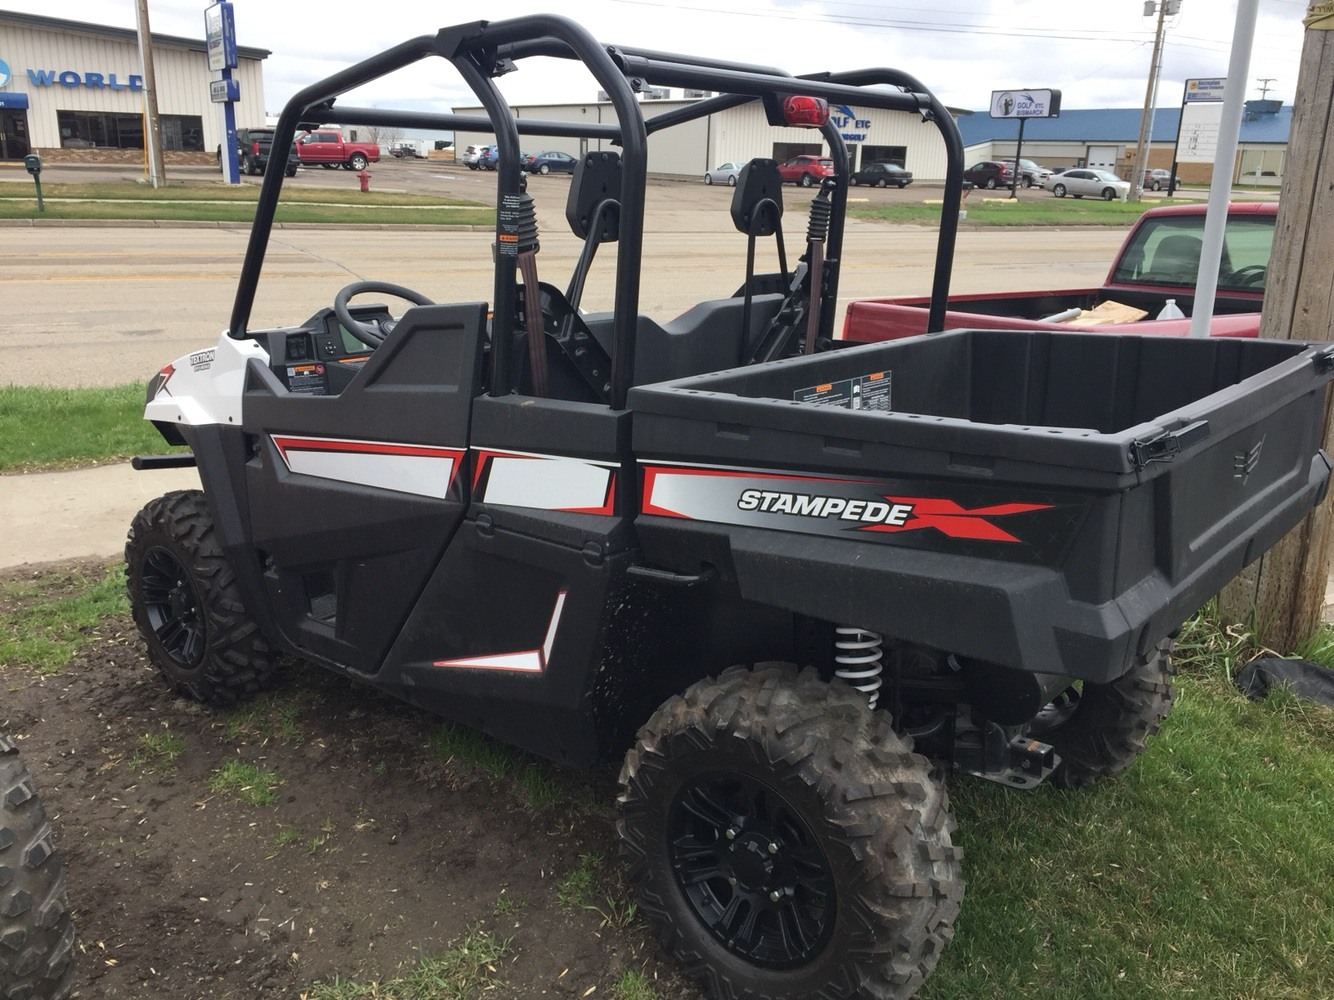 2018 Arctic Cat Stampede X in Bismarck, North Dakota - Photo 2